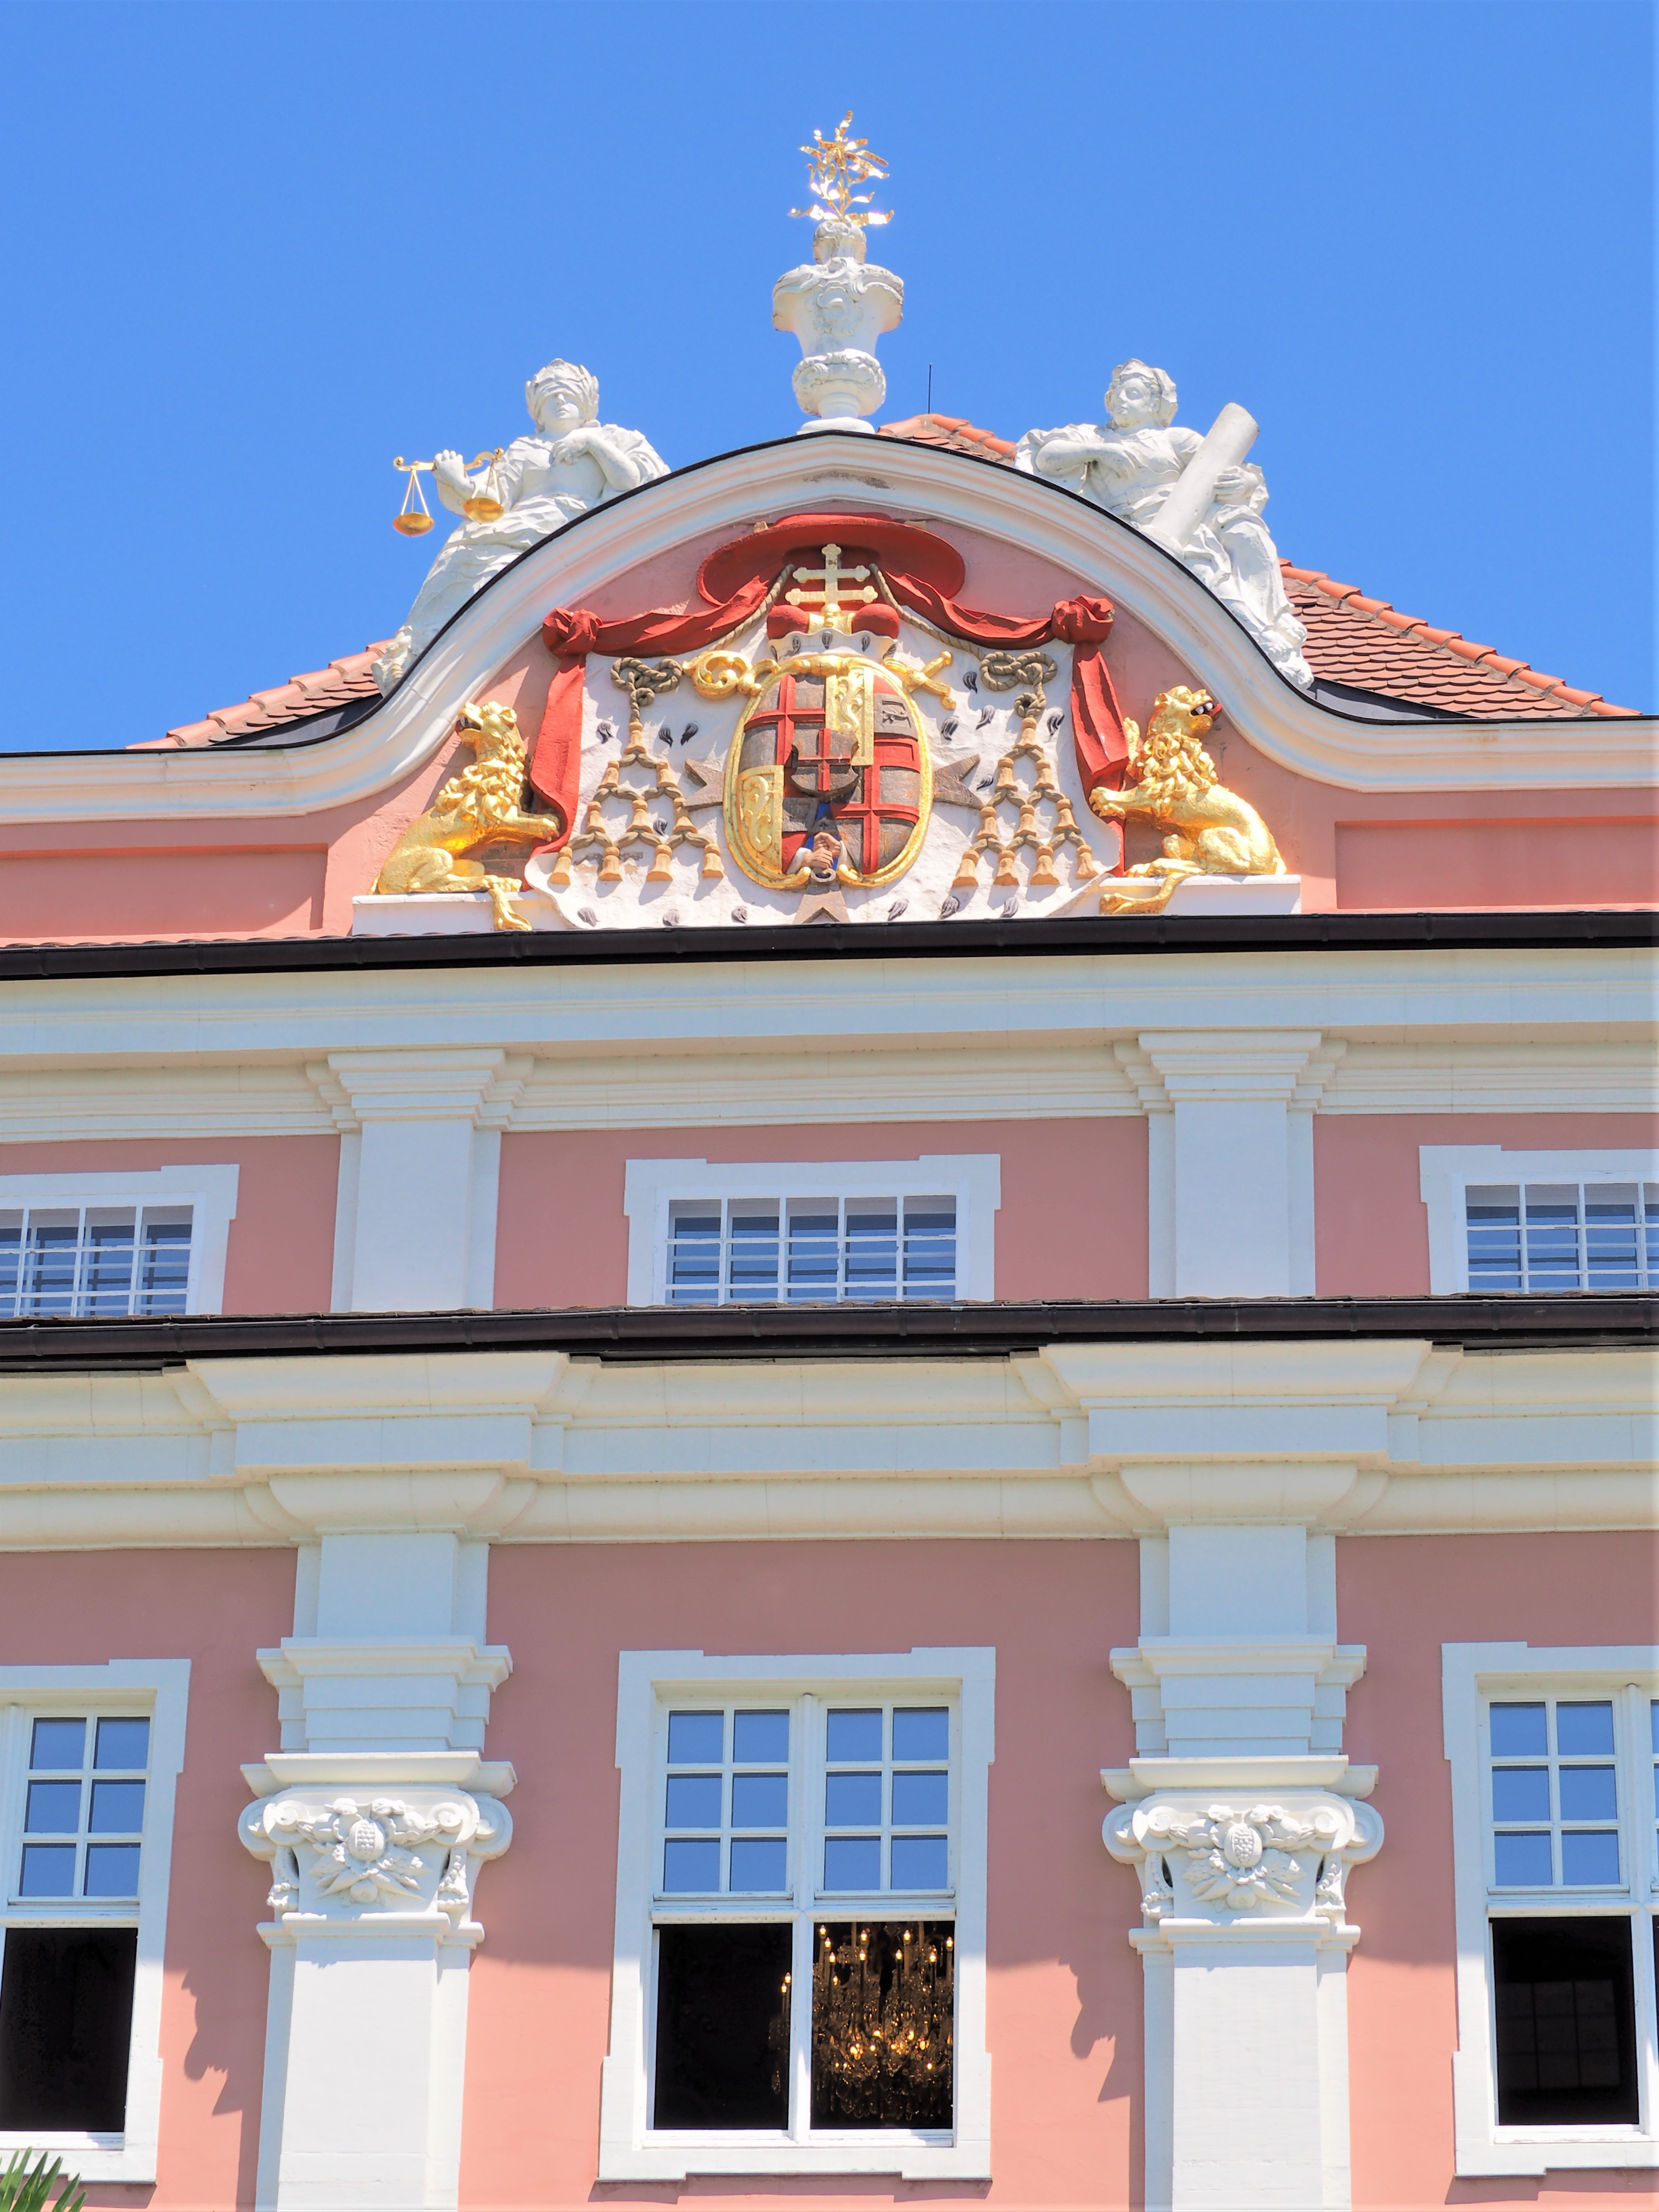 .-Clio-and-co-blog-voyage-Allemagne-Meersburg-architecture-Bade-Wurtemberg